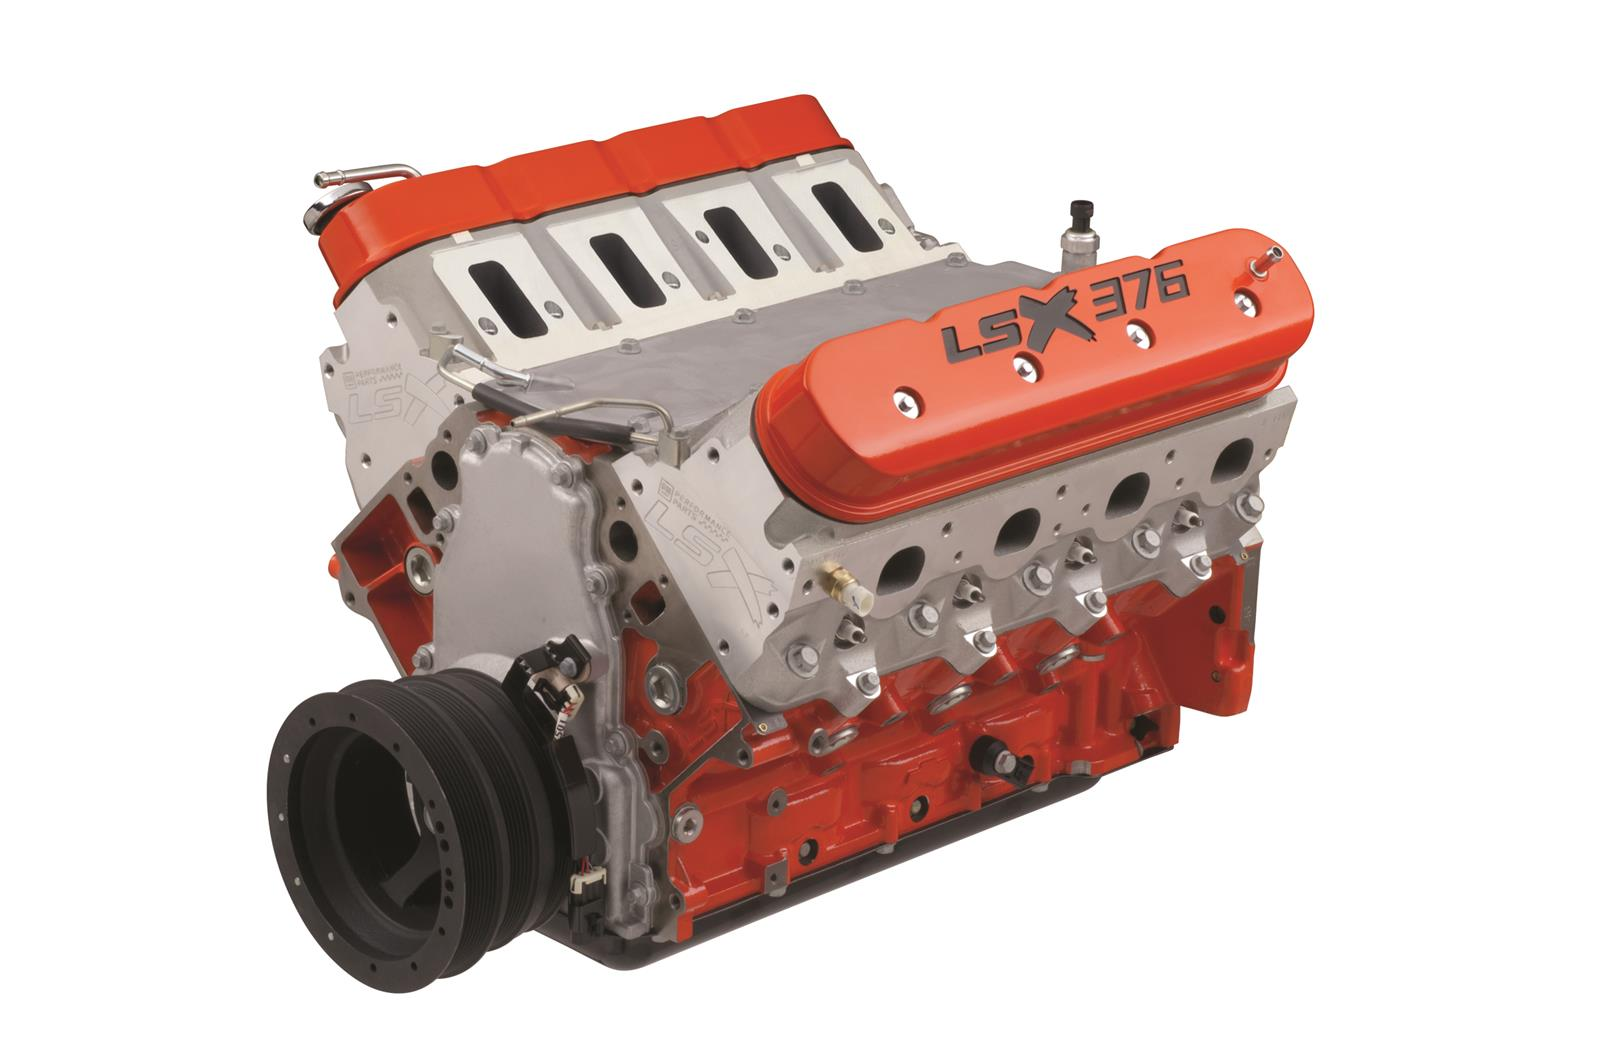 Chevrolet Performance CPP LSX 376-B15 Long Block Crate Engines 19299306